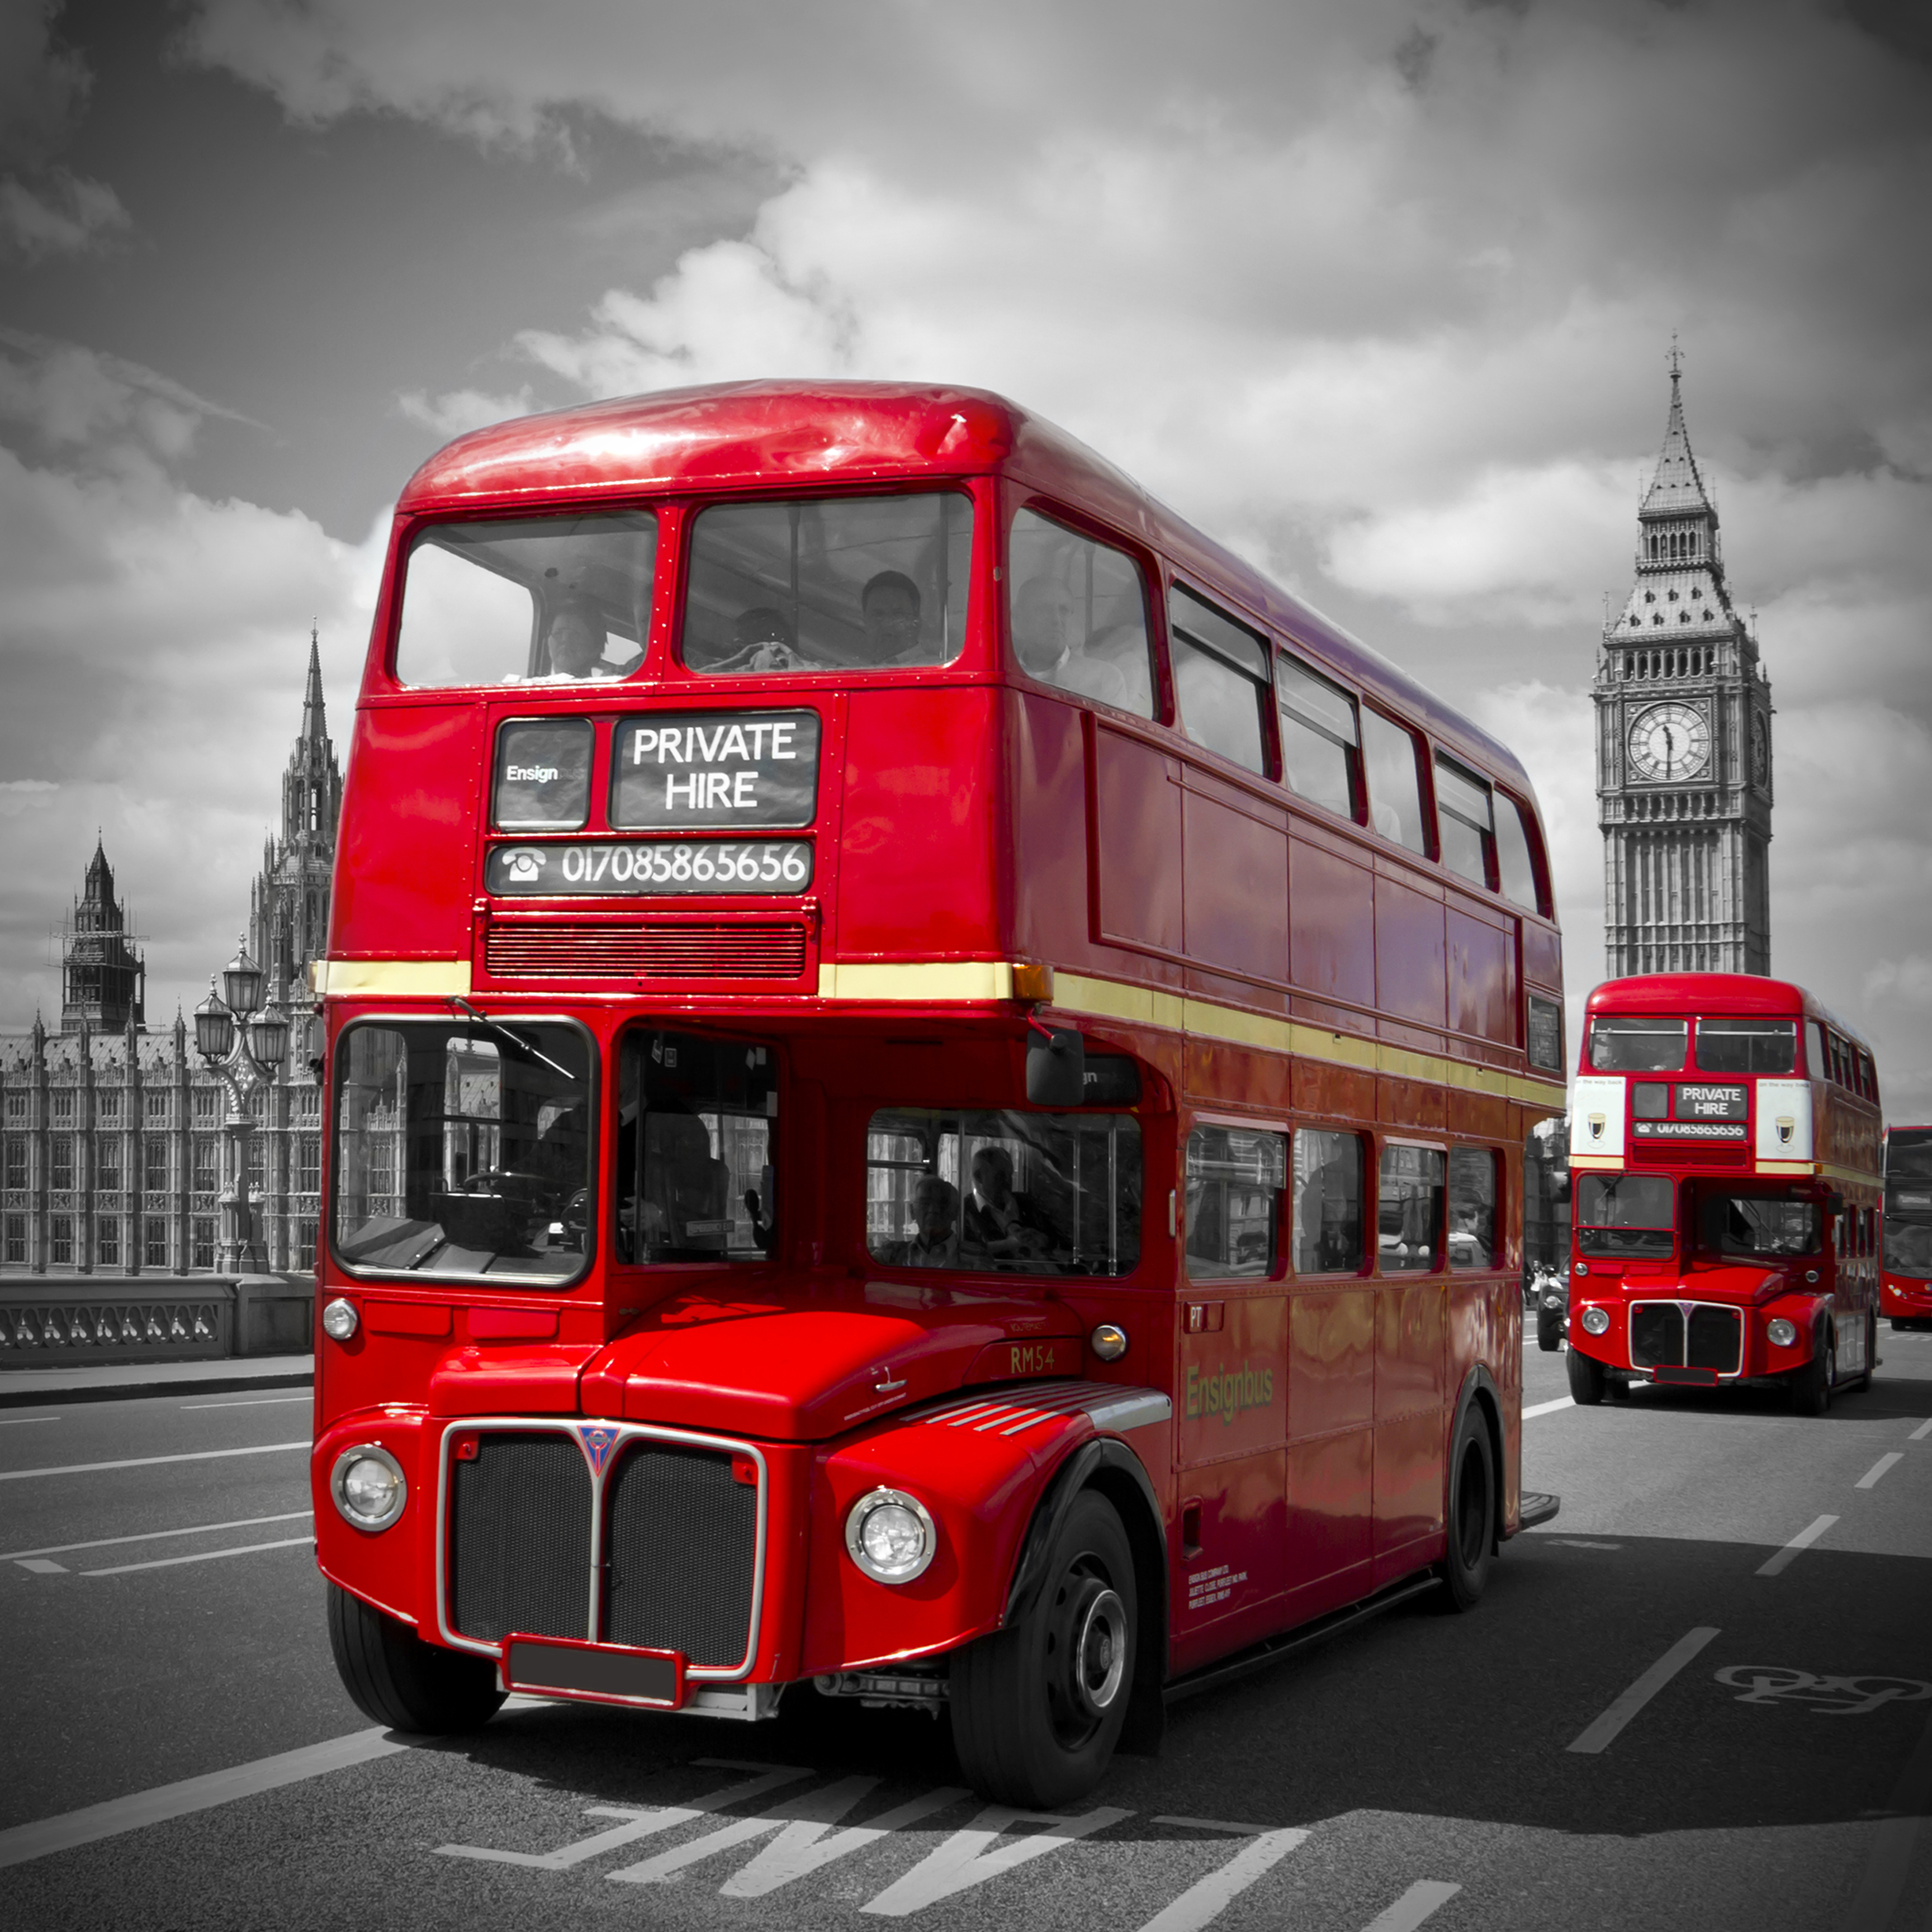 The Modelling News: Revell 07651 1/24 London Bus Pt. IV Pictures of red london buses